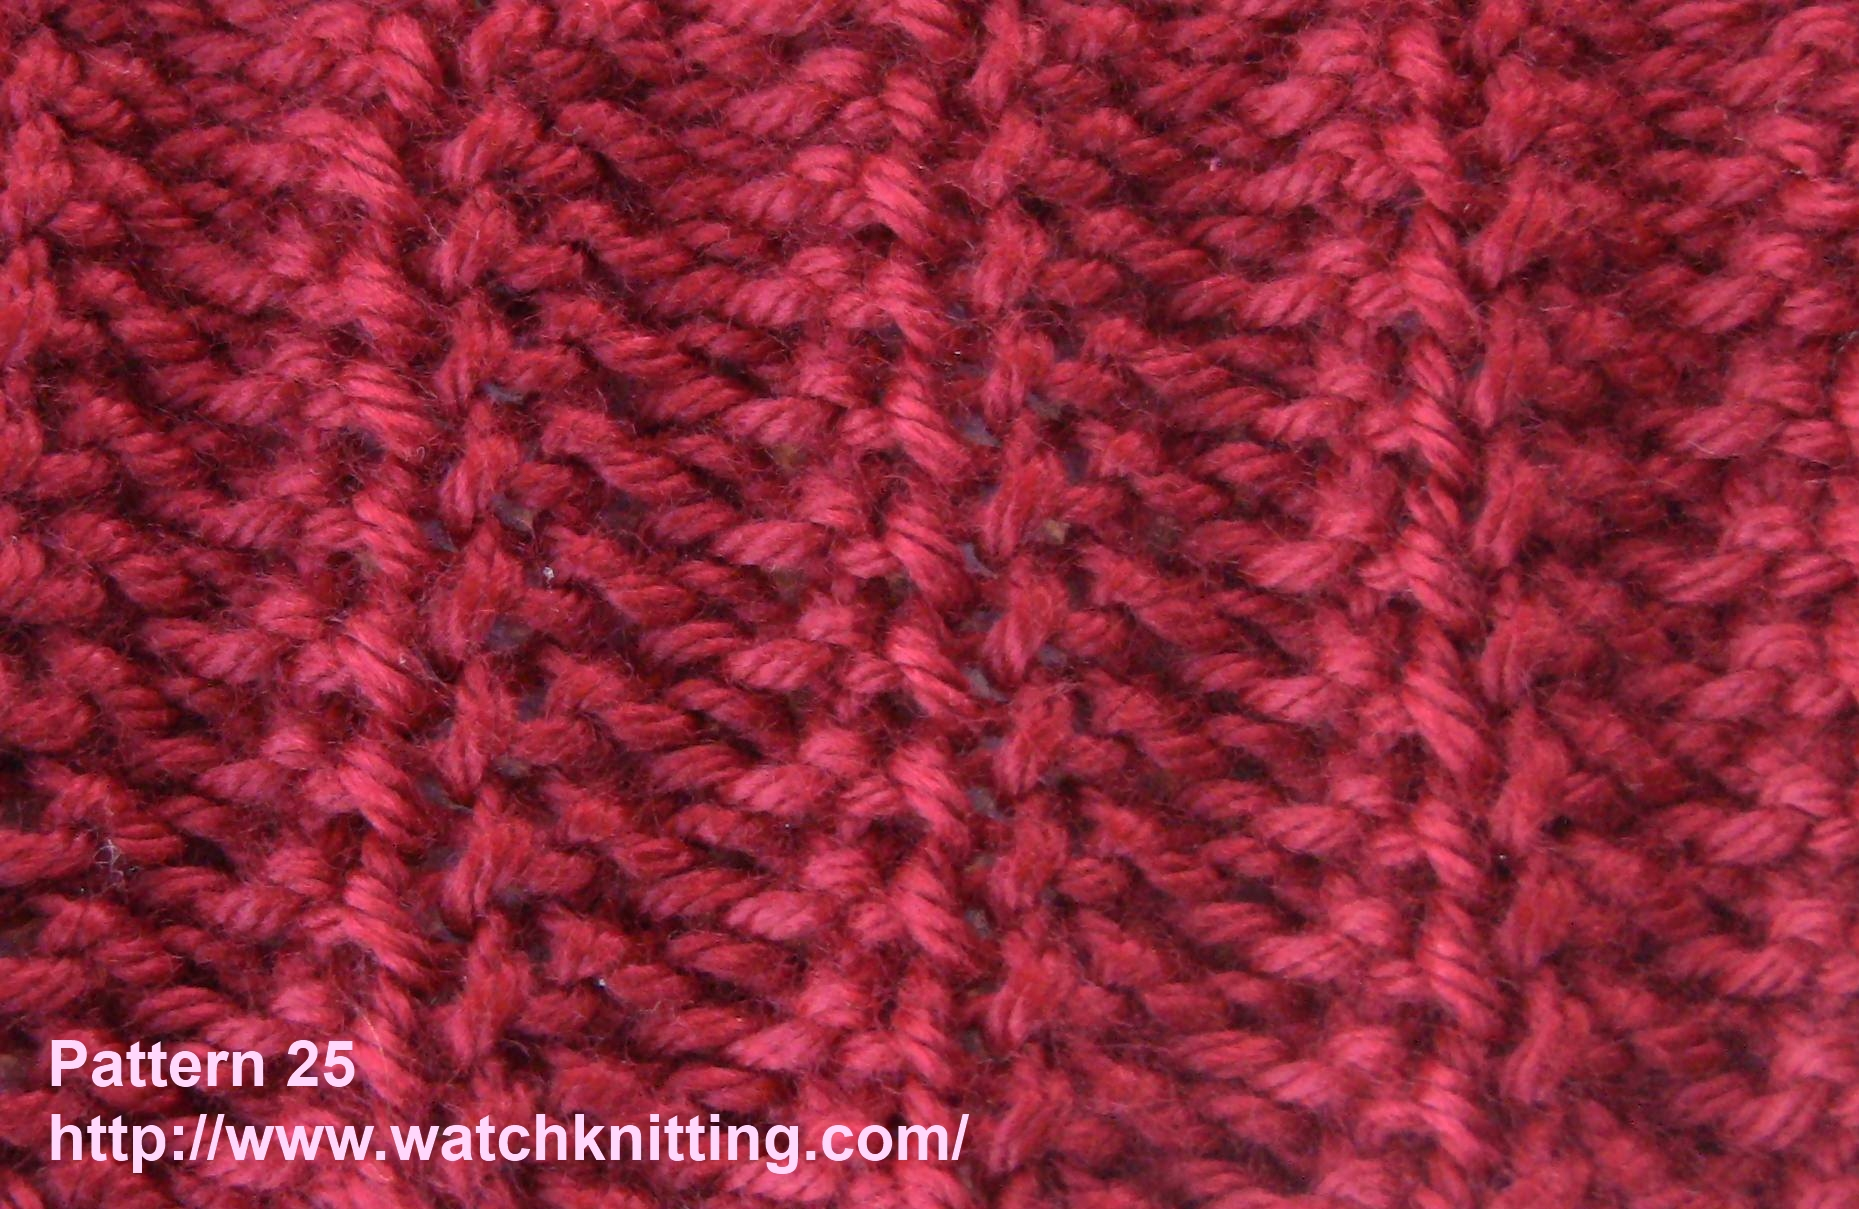 Knitting Instructions : Knitting Stitches Instructions Rib Knitting Stitches